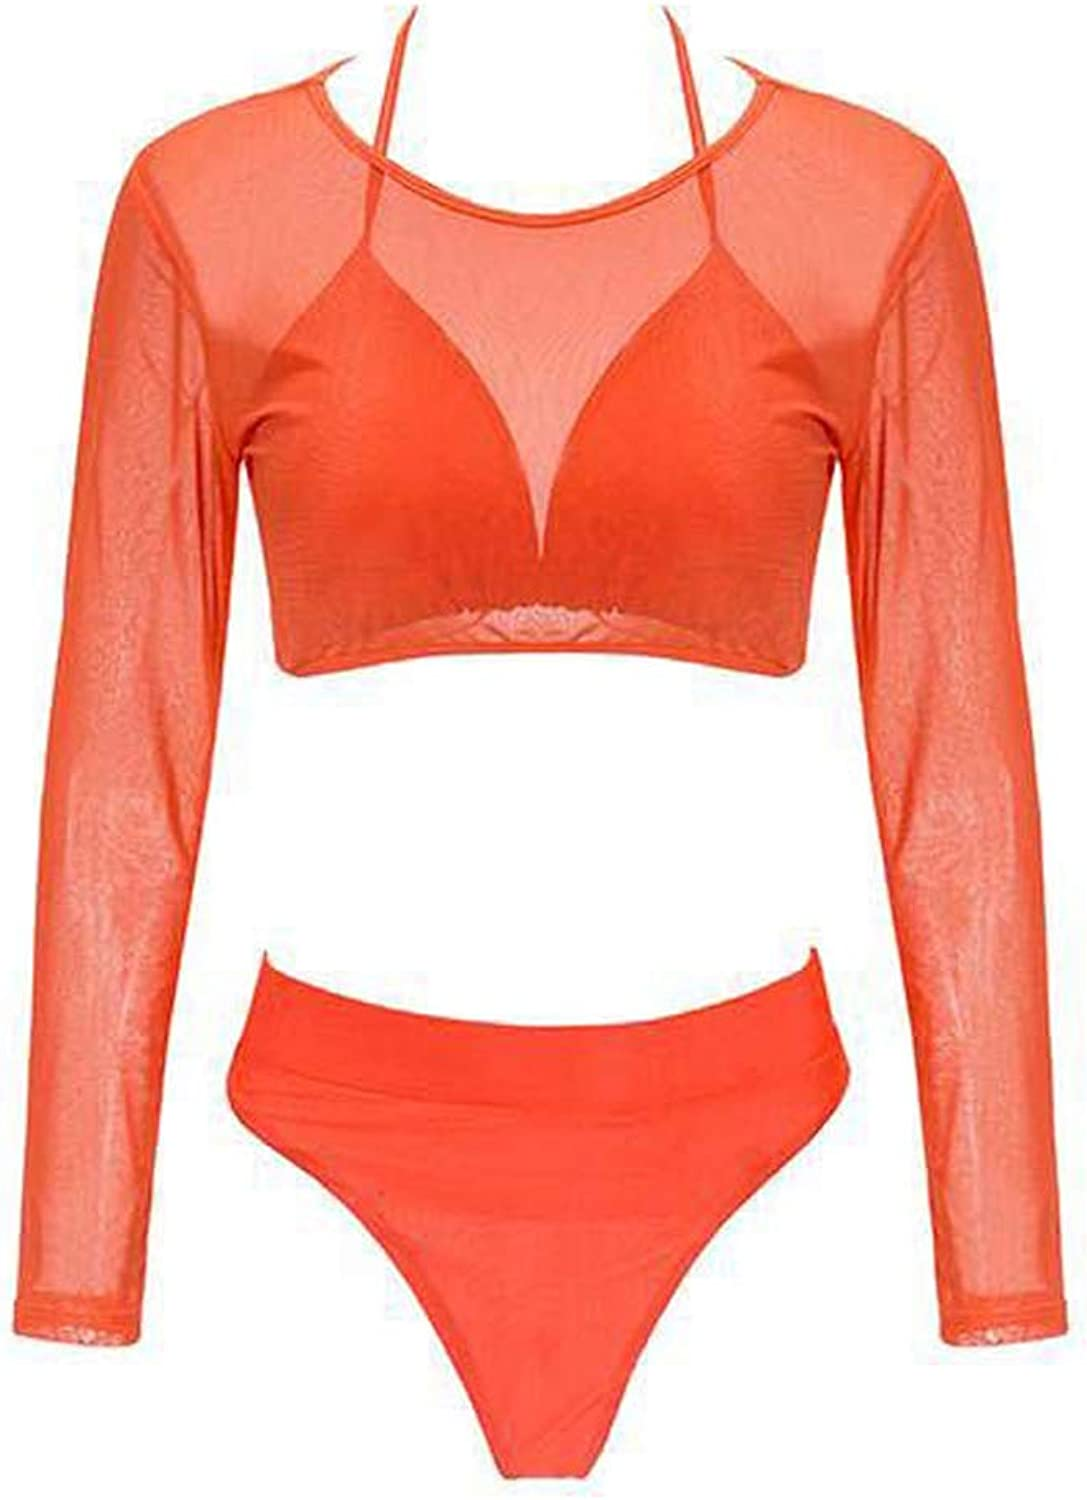 High Waist Split Swimsuit Women, Split Solid color Swimsuit Bikini Sets for Women Sexy Ladies Swimwear